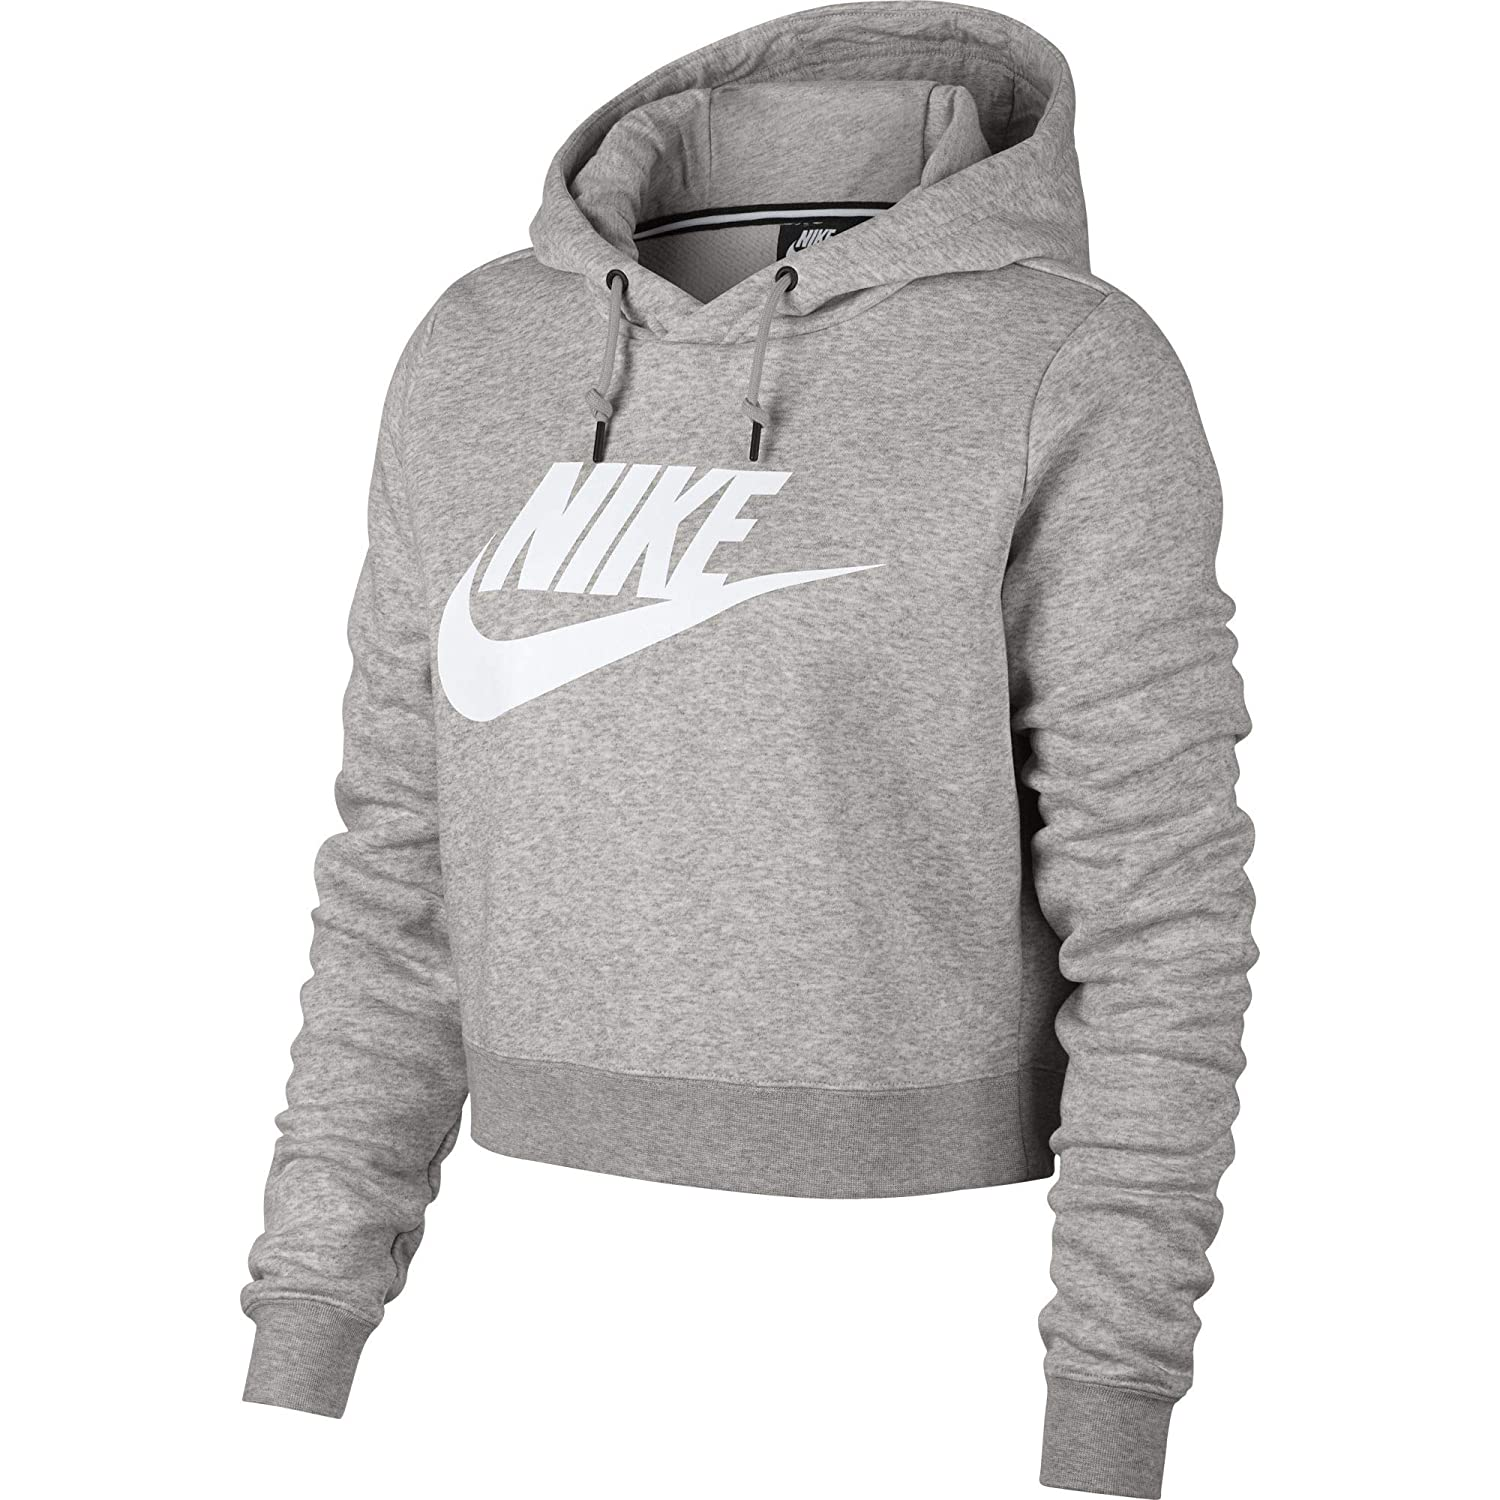 7b0a34ee3bfa Amazon.com  Nike Womens Rally Hoodie Crop Top Sweatshirt  Sports   Outdoors